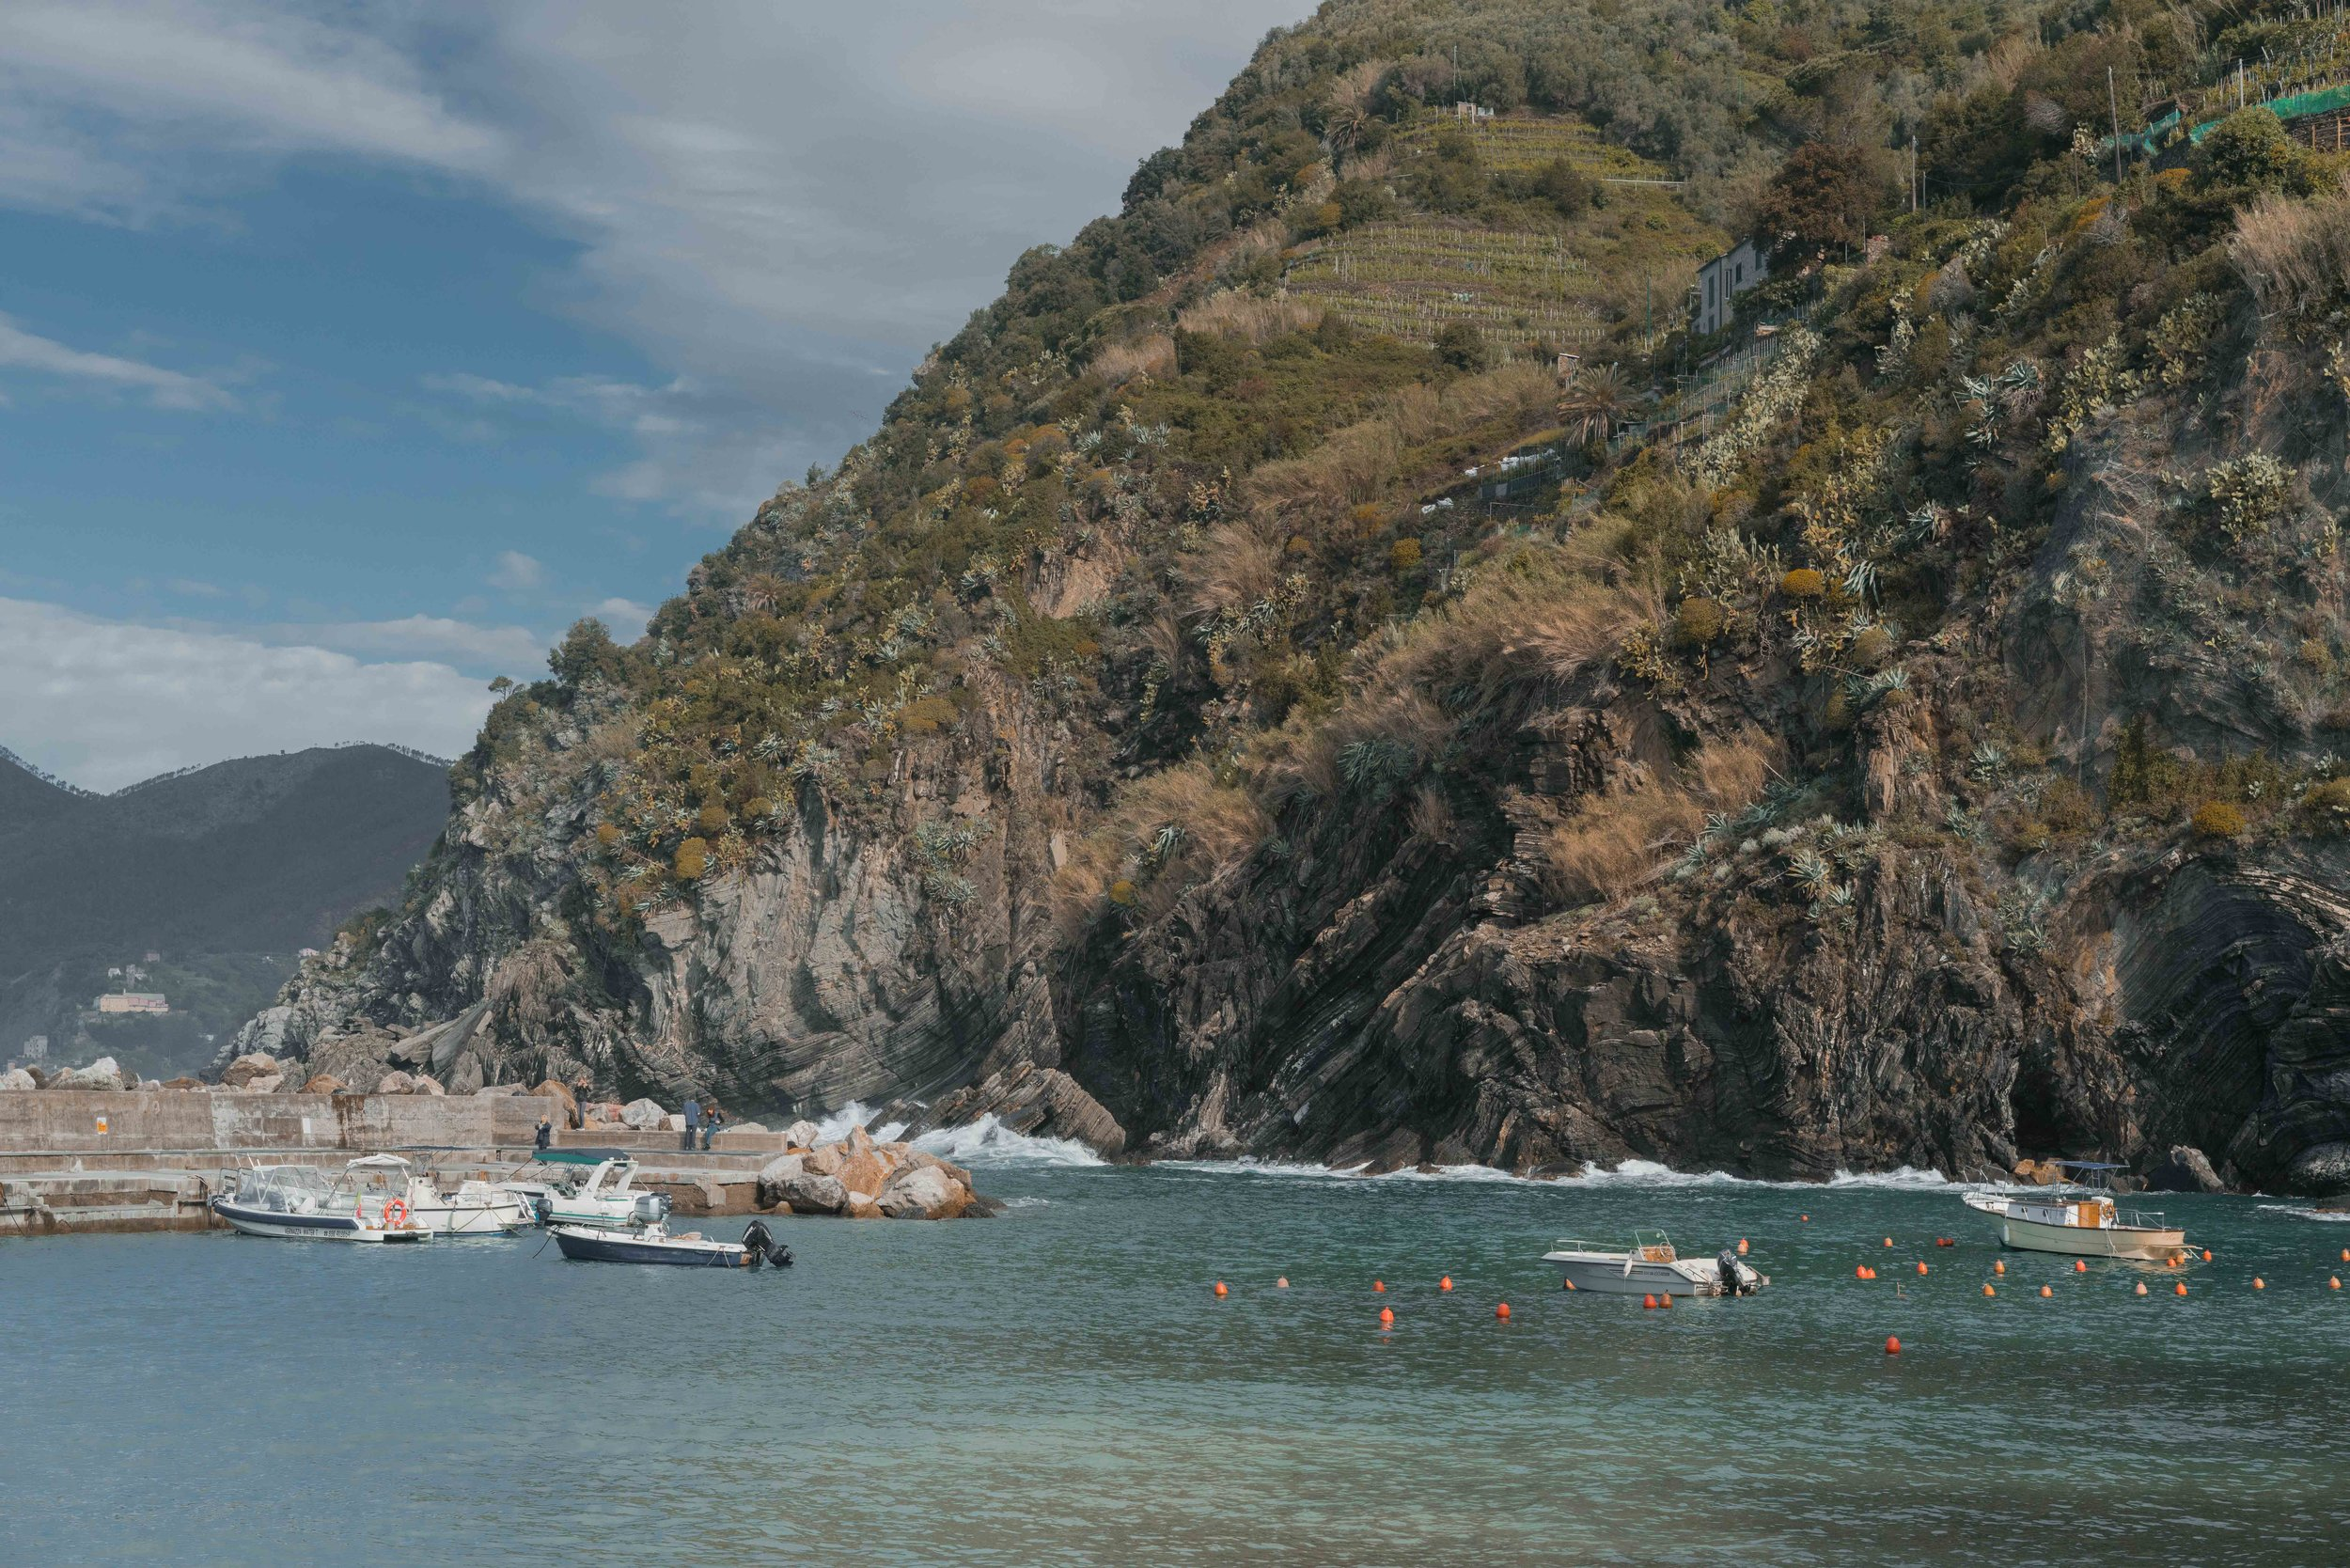 Holiday in Italy - Day 7 Cinque Terre Vernazza - Sony A7R2 -- 015.jpg